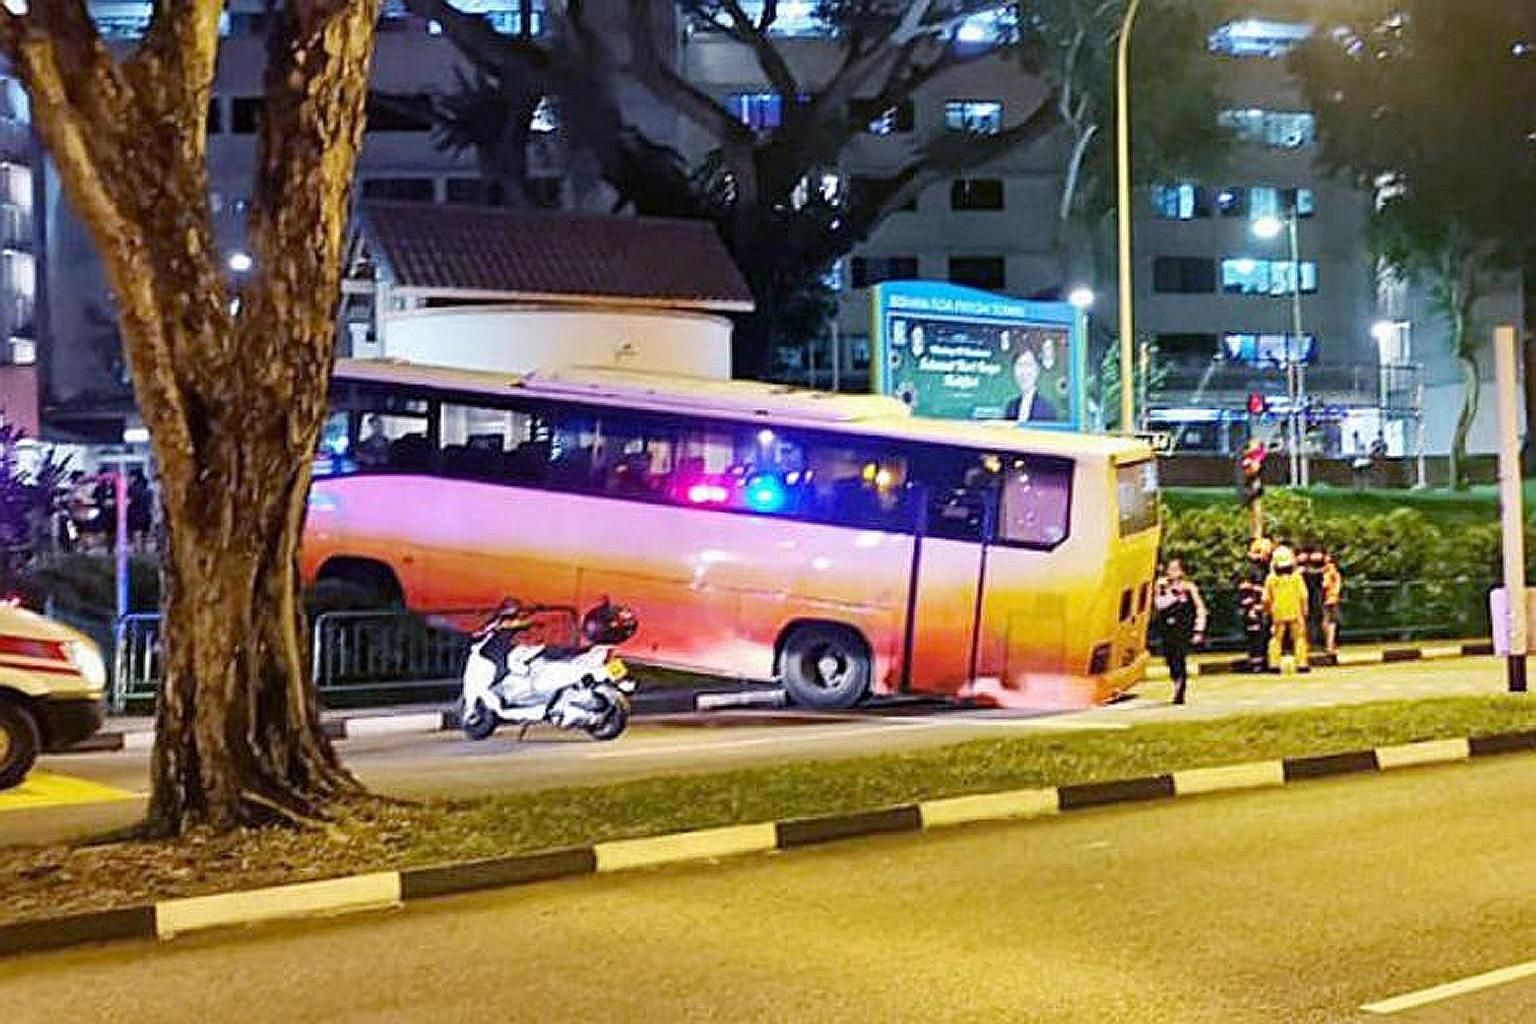 An eyewitness said the bus ran a red light before colliding with a car (left). It stopped only after it went through the barrier on the pedestrian walkway (above).